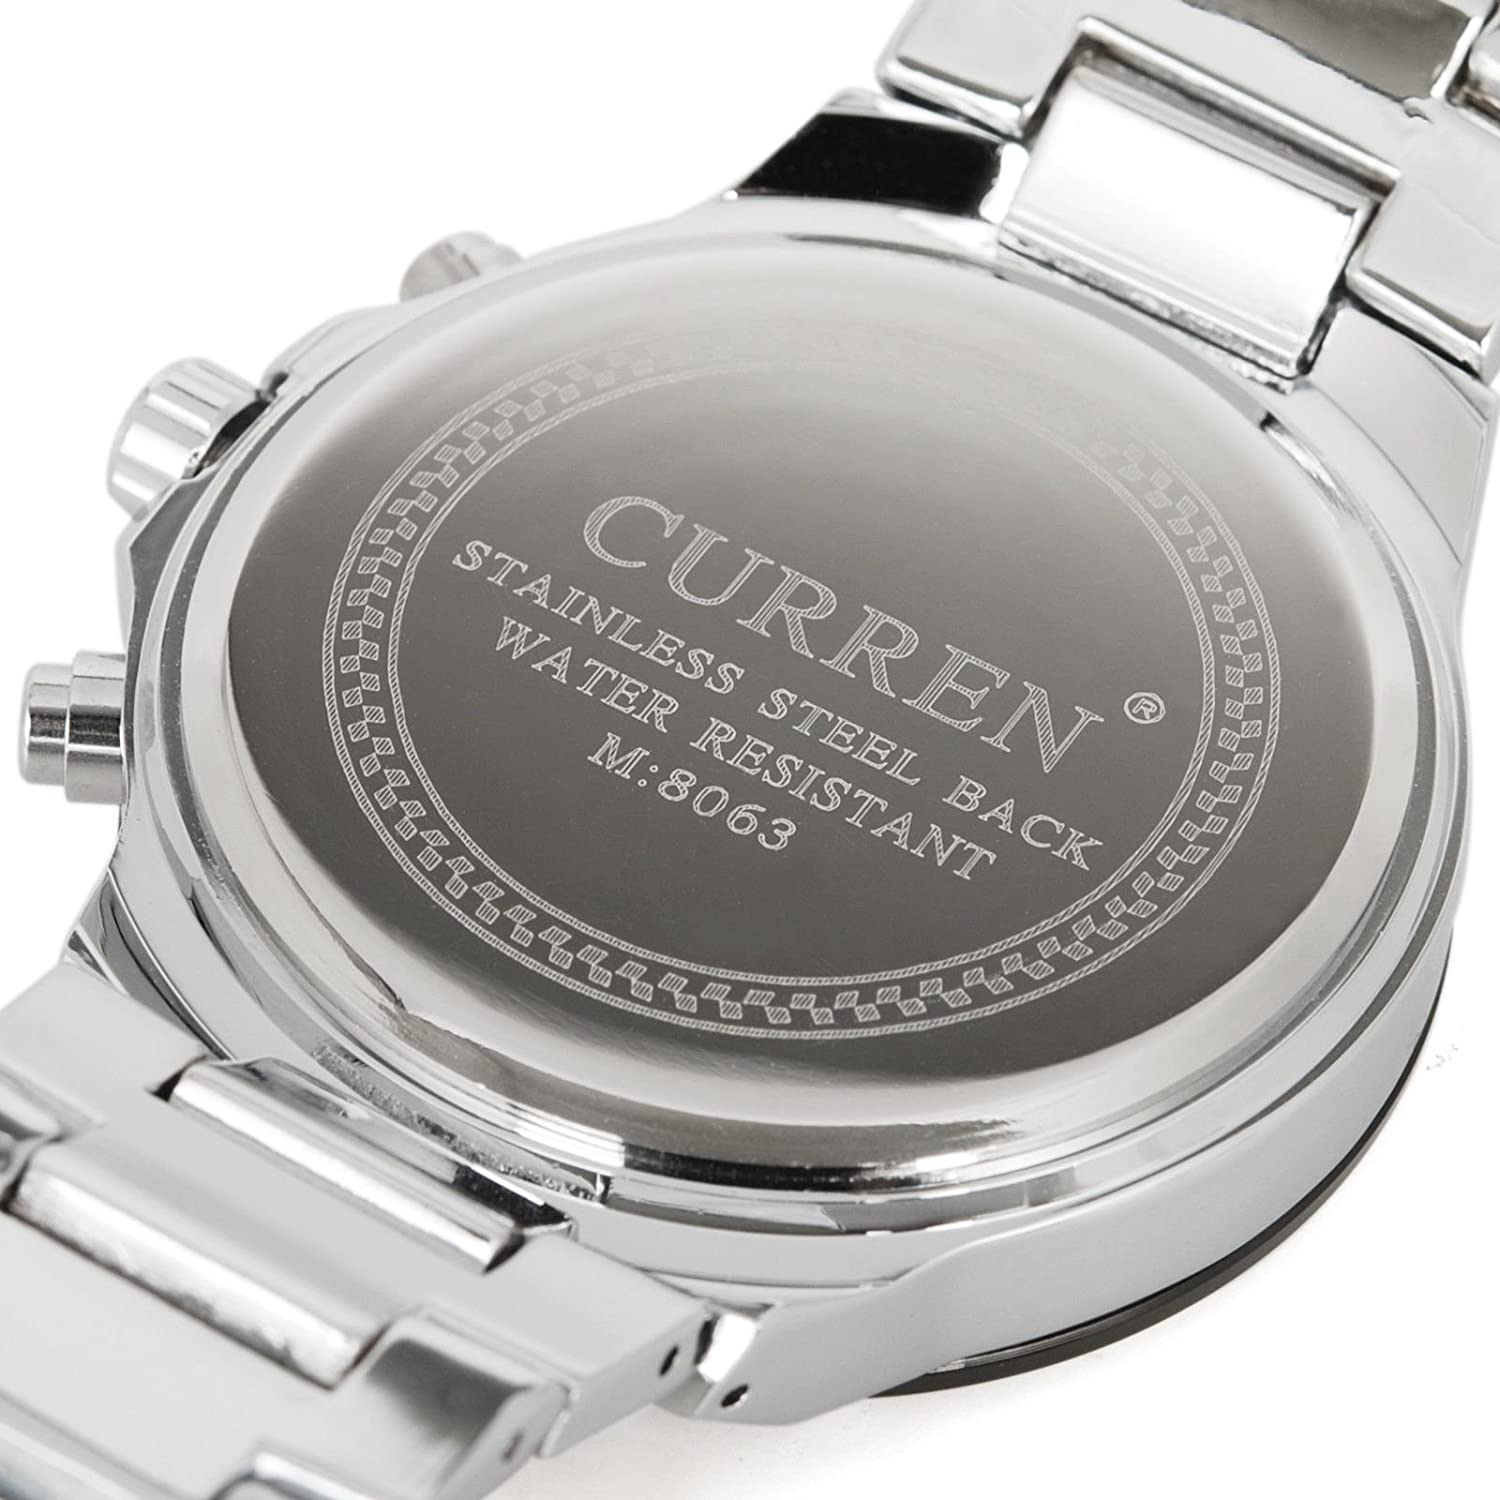 Amazon.com: CURREN Luxury Fashion Men Wrist Watch Stainless Steel Band Mens Sport Watch HOT: Electronics